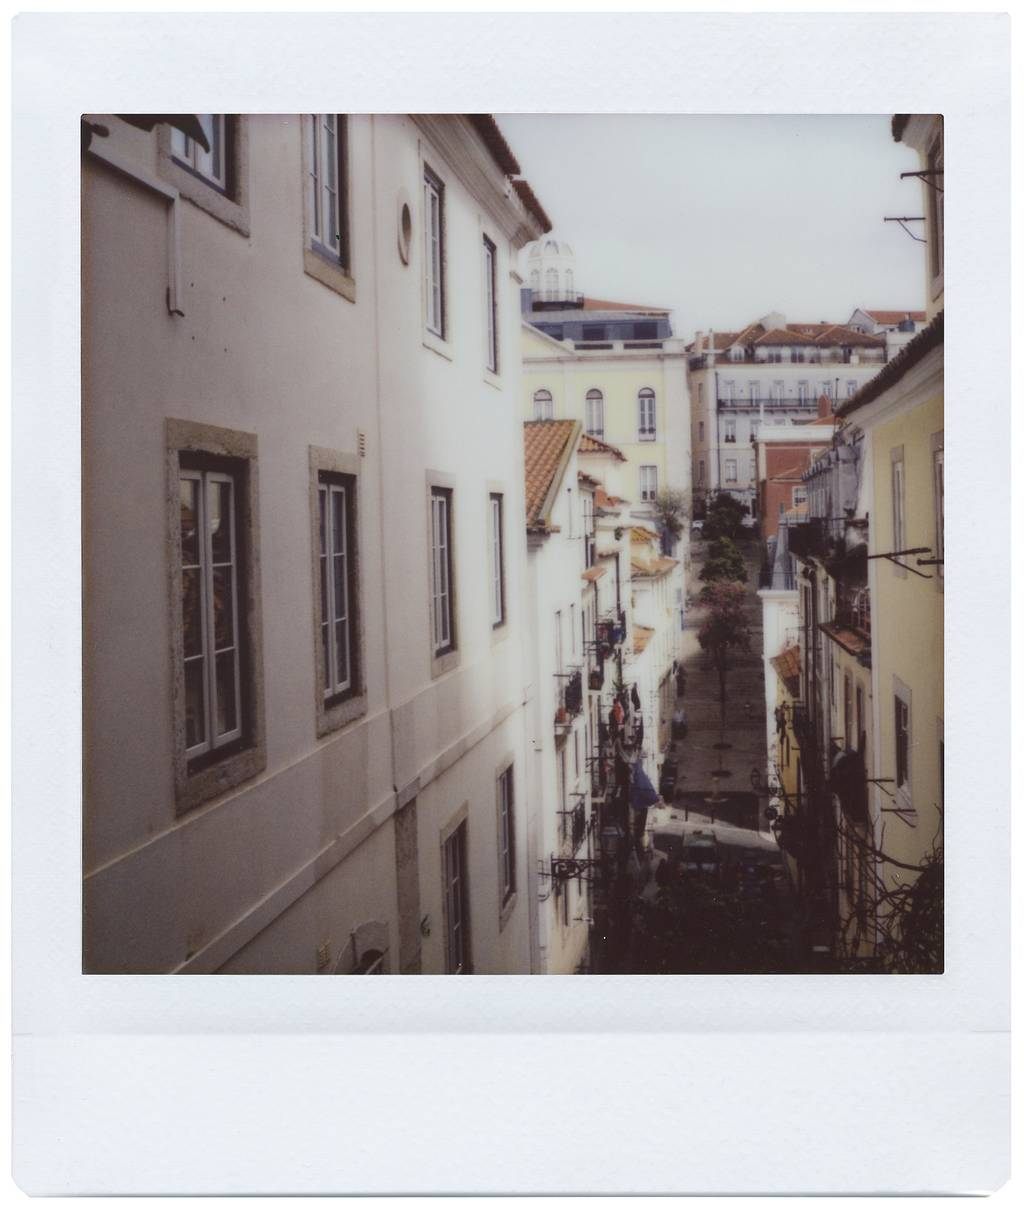 Luca Mercedes: 24 Hours with the Lomo'Instant Square Glass